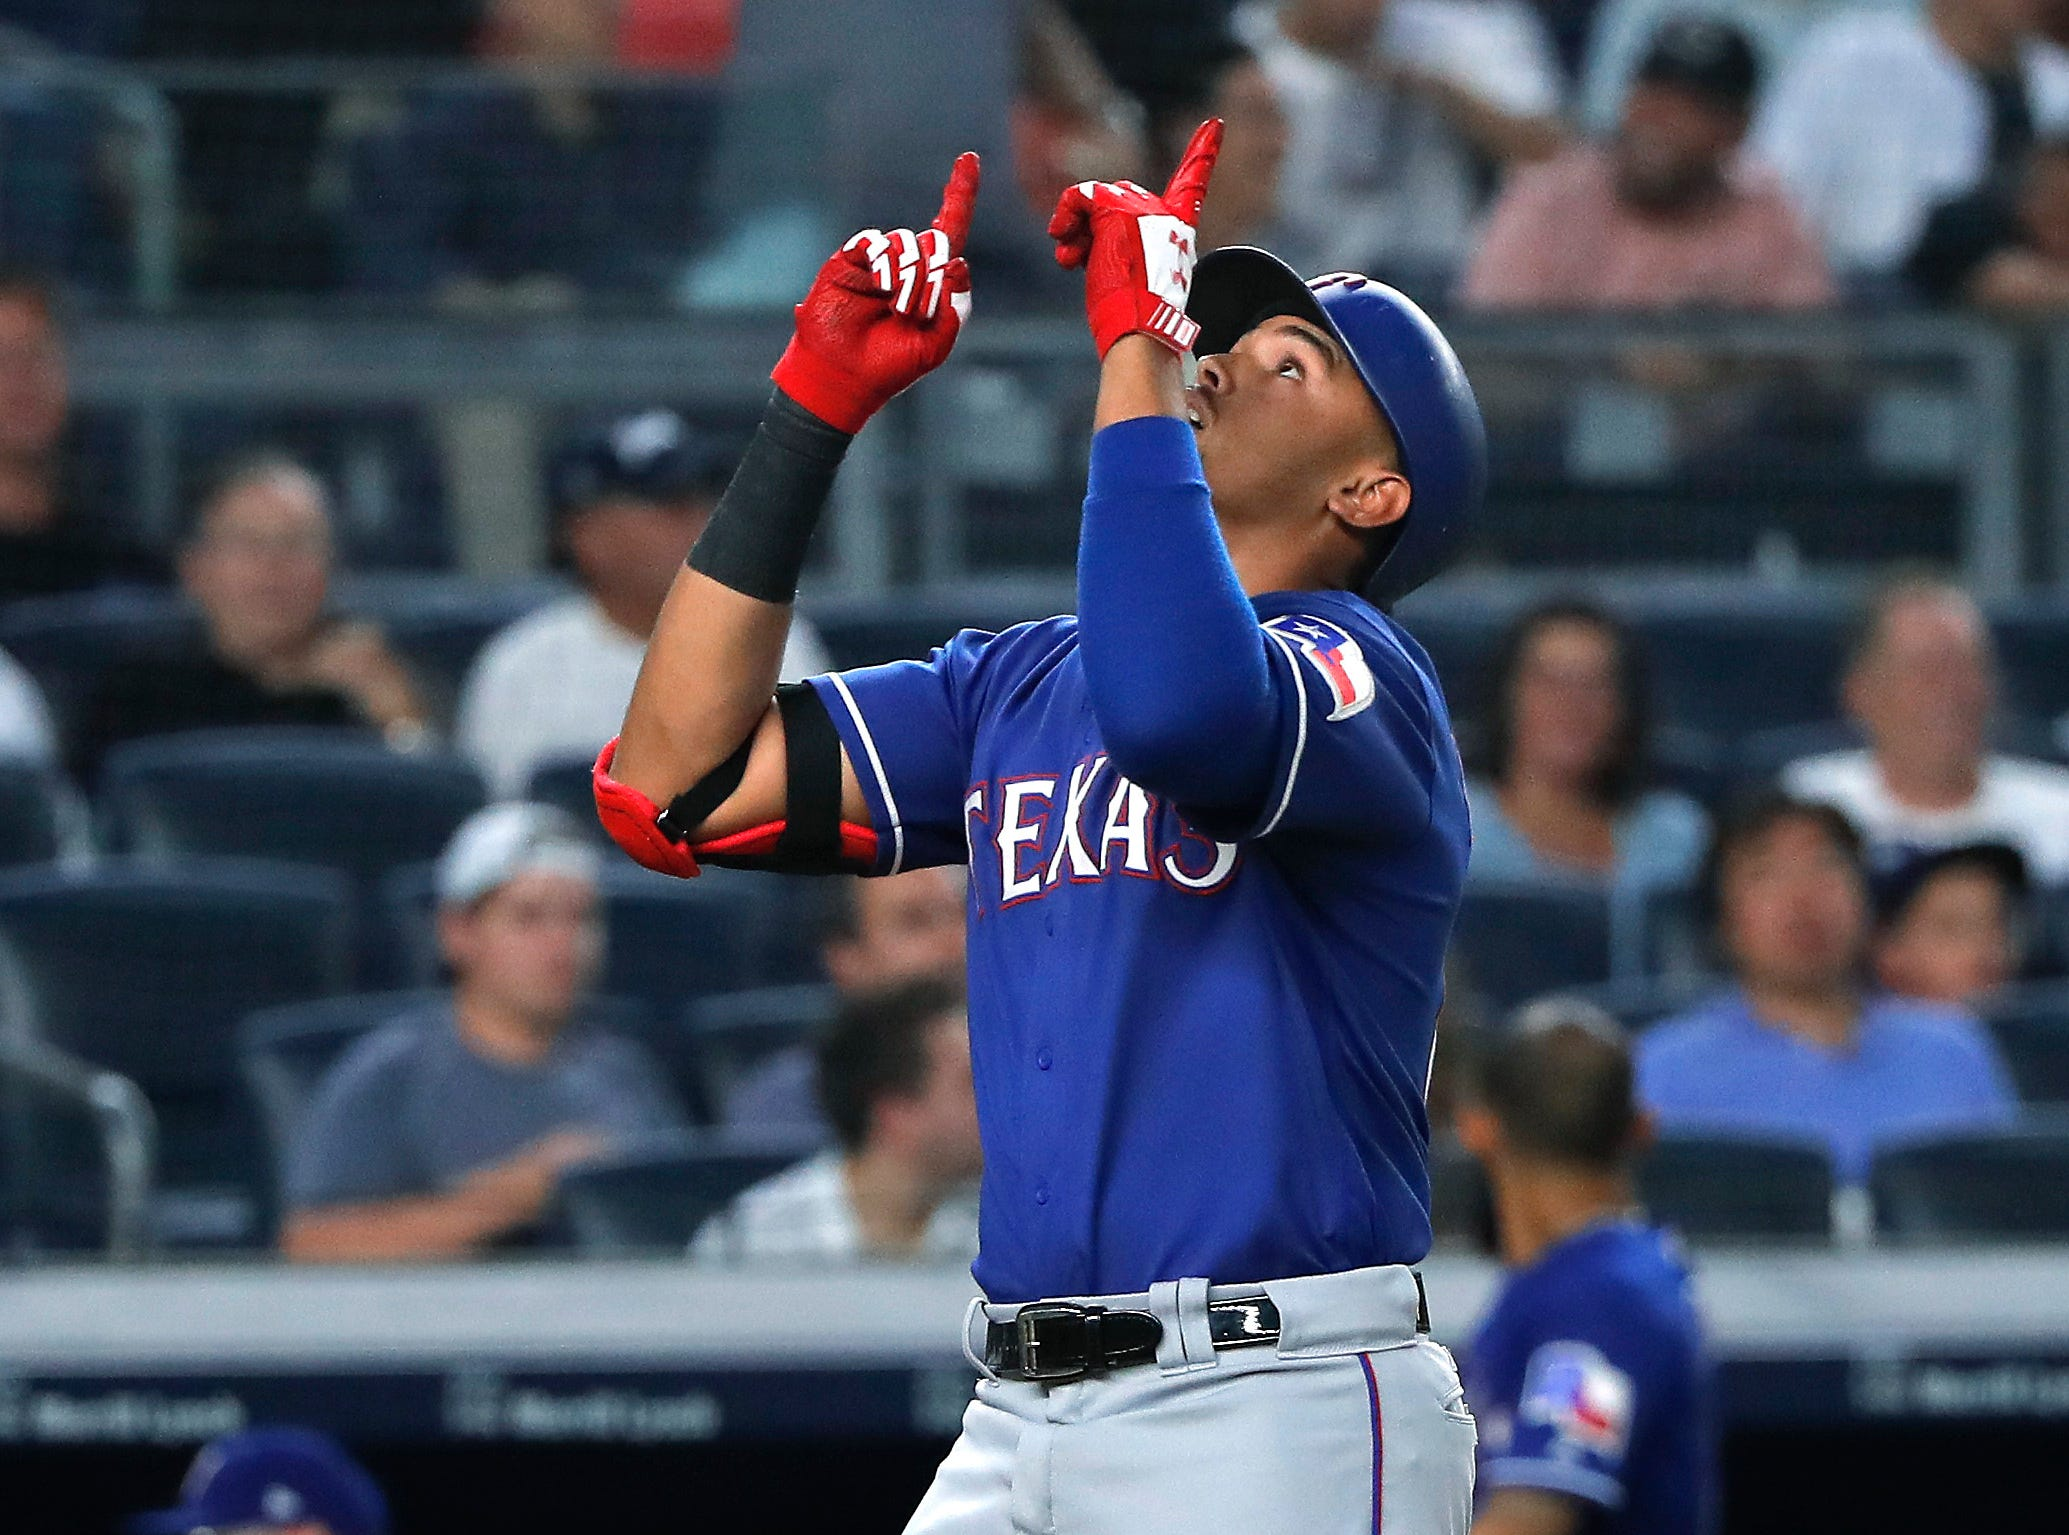 Texas Rangers' Ronald Guzman reacts as he crosses the plate after hitting a solo home run against the New York Yankees during the fourth inning of a baseball game Friday, Aug. 10, 2018, in New York.